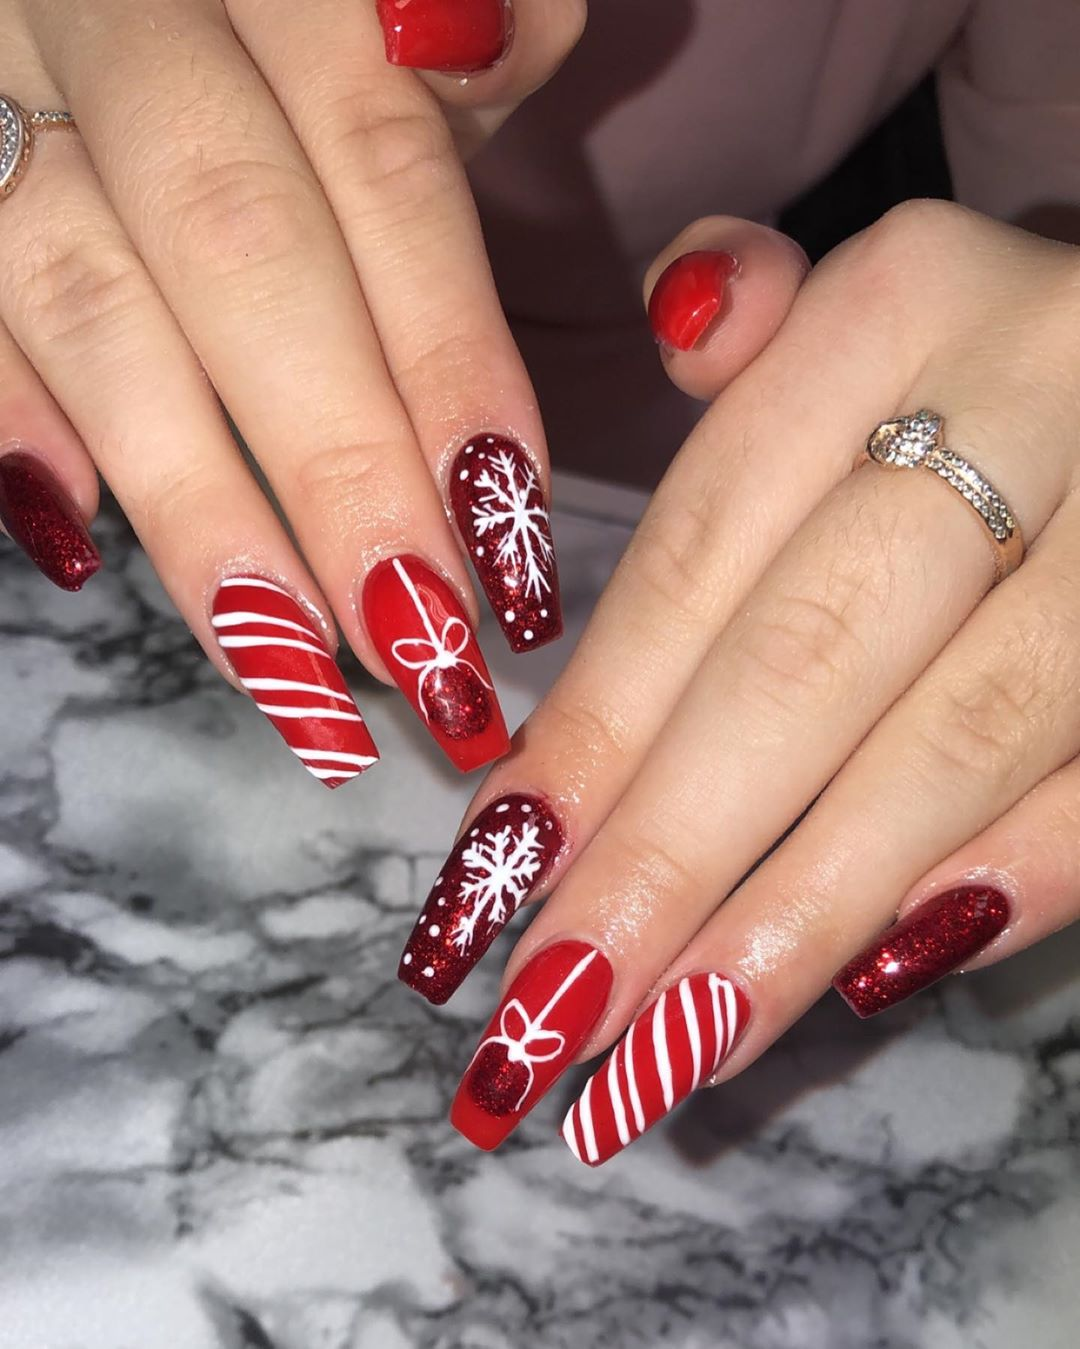 Ornament, snowflakes, glitter and red/whiete